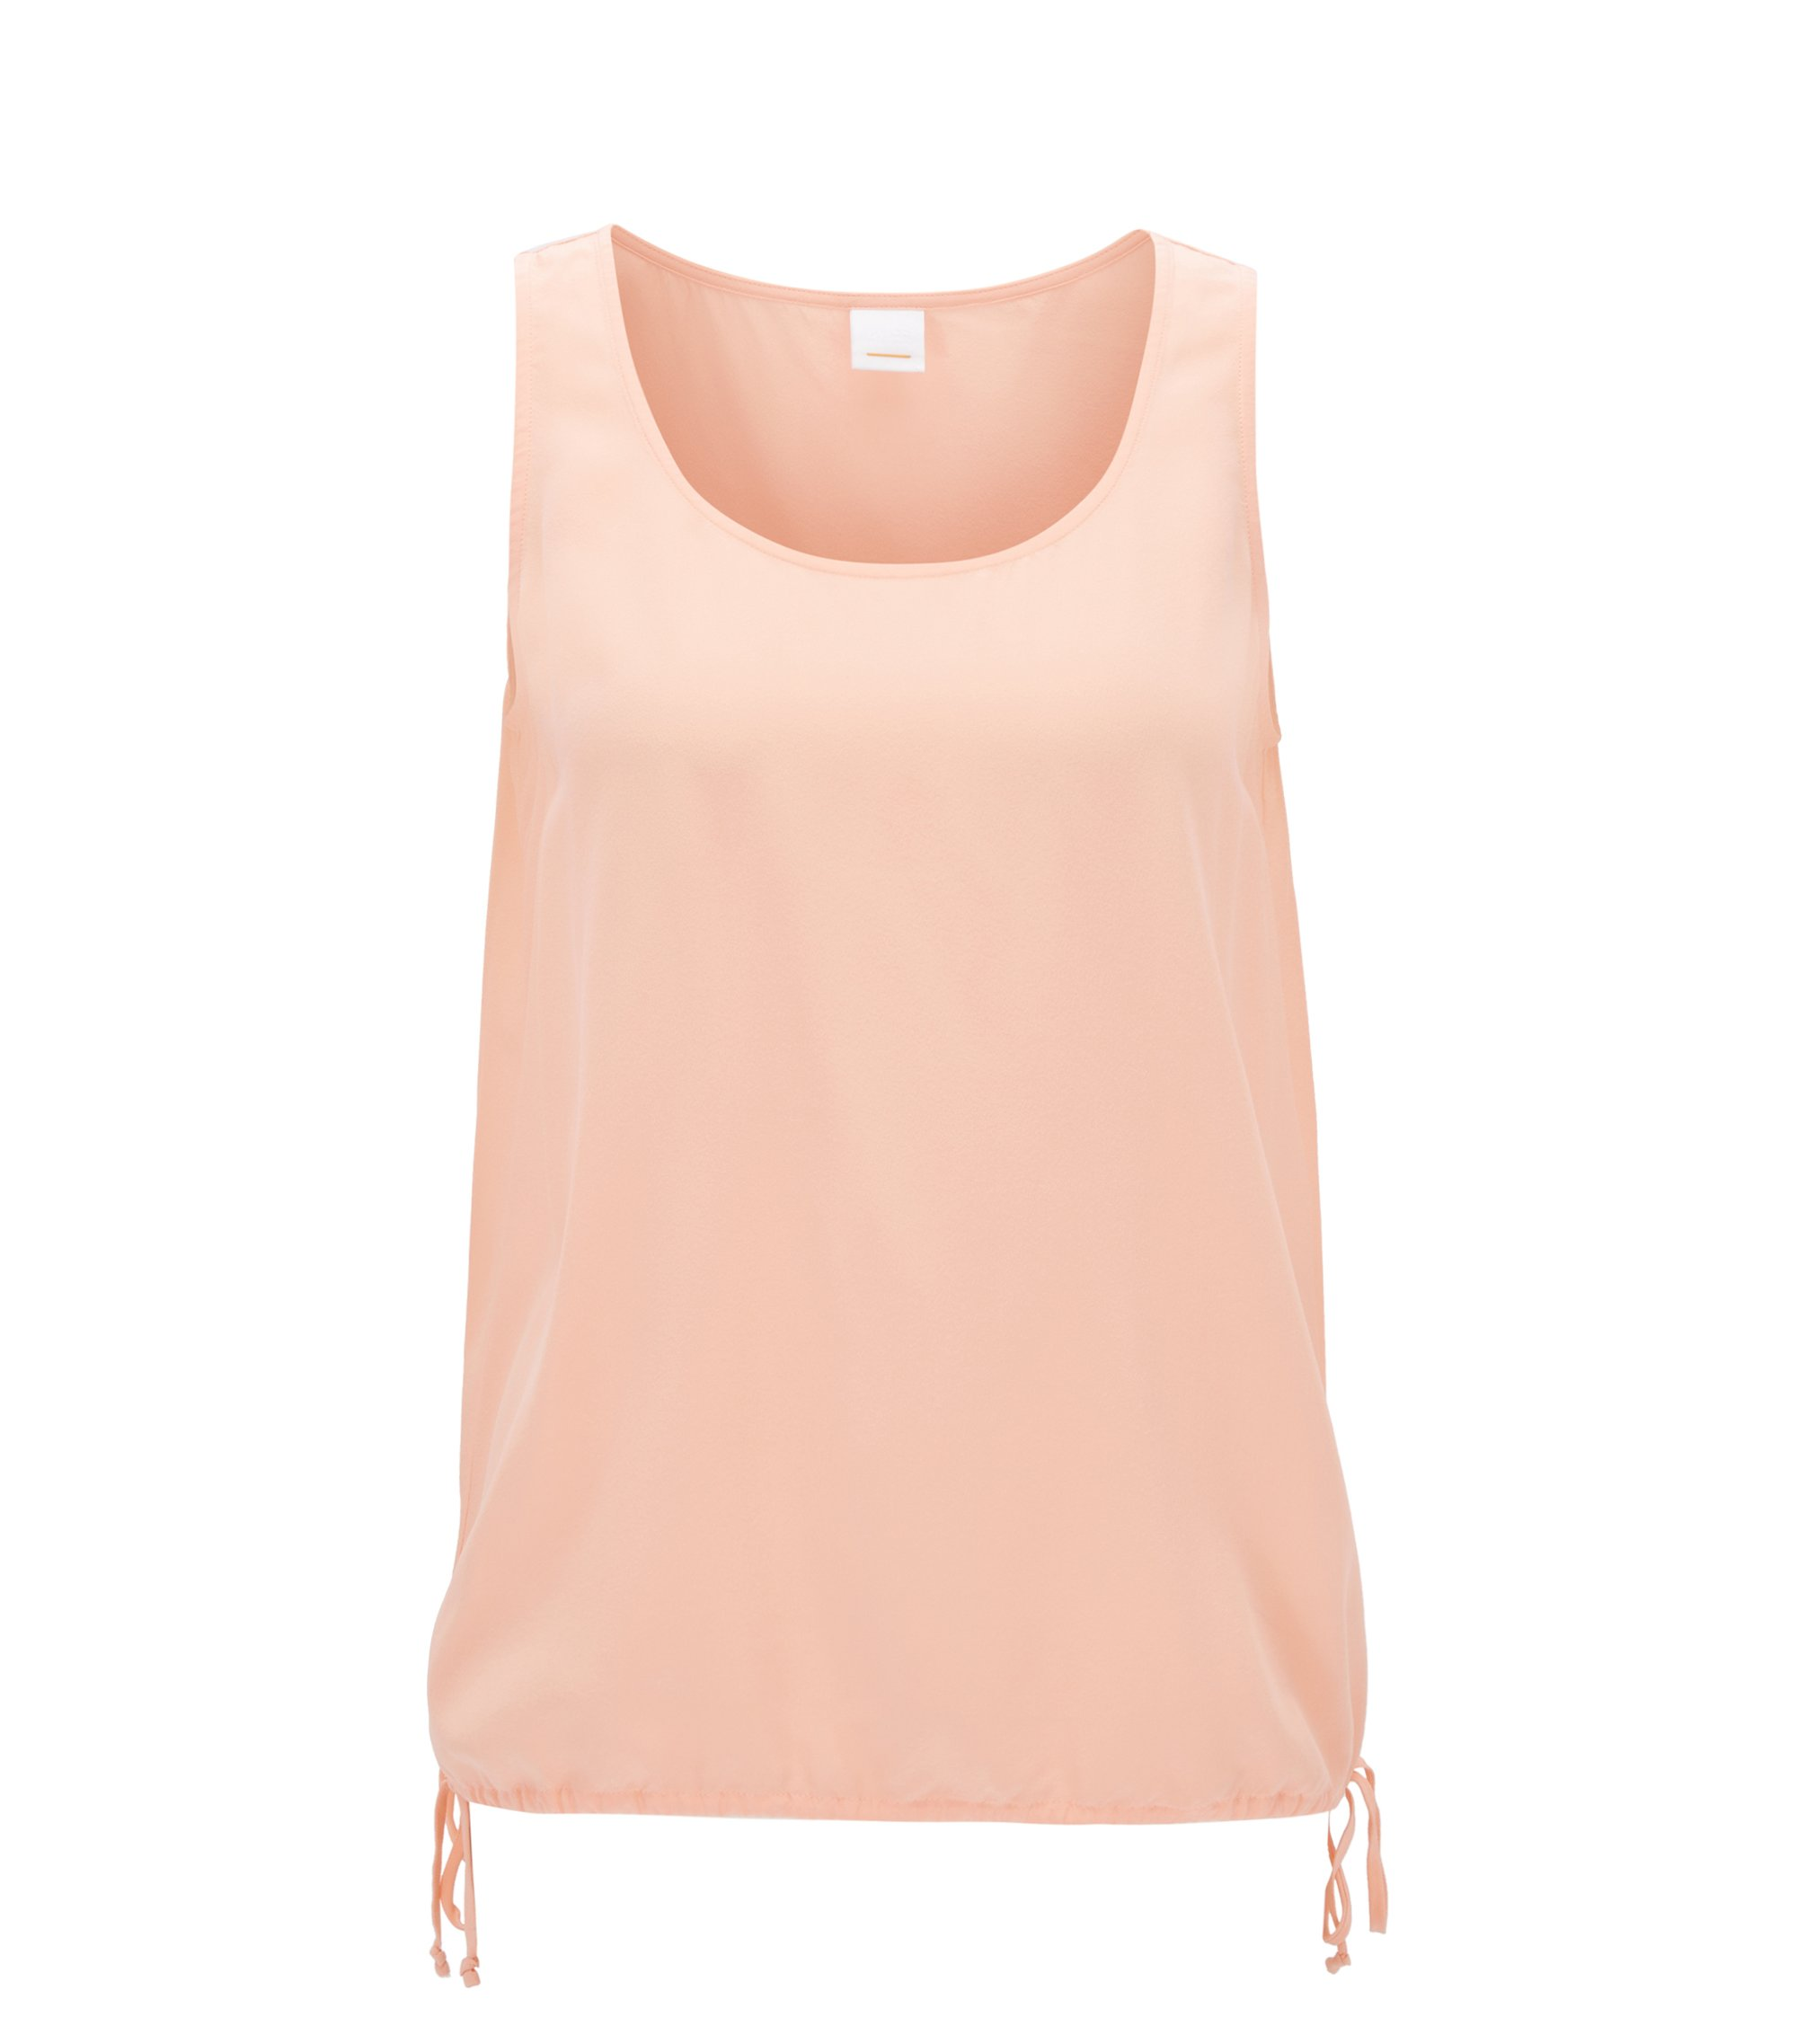 Sleeveless silk top with drawstring hem, light pink